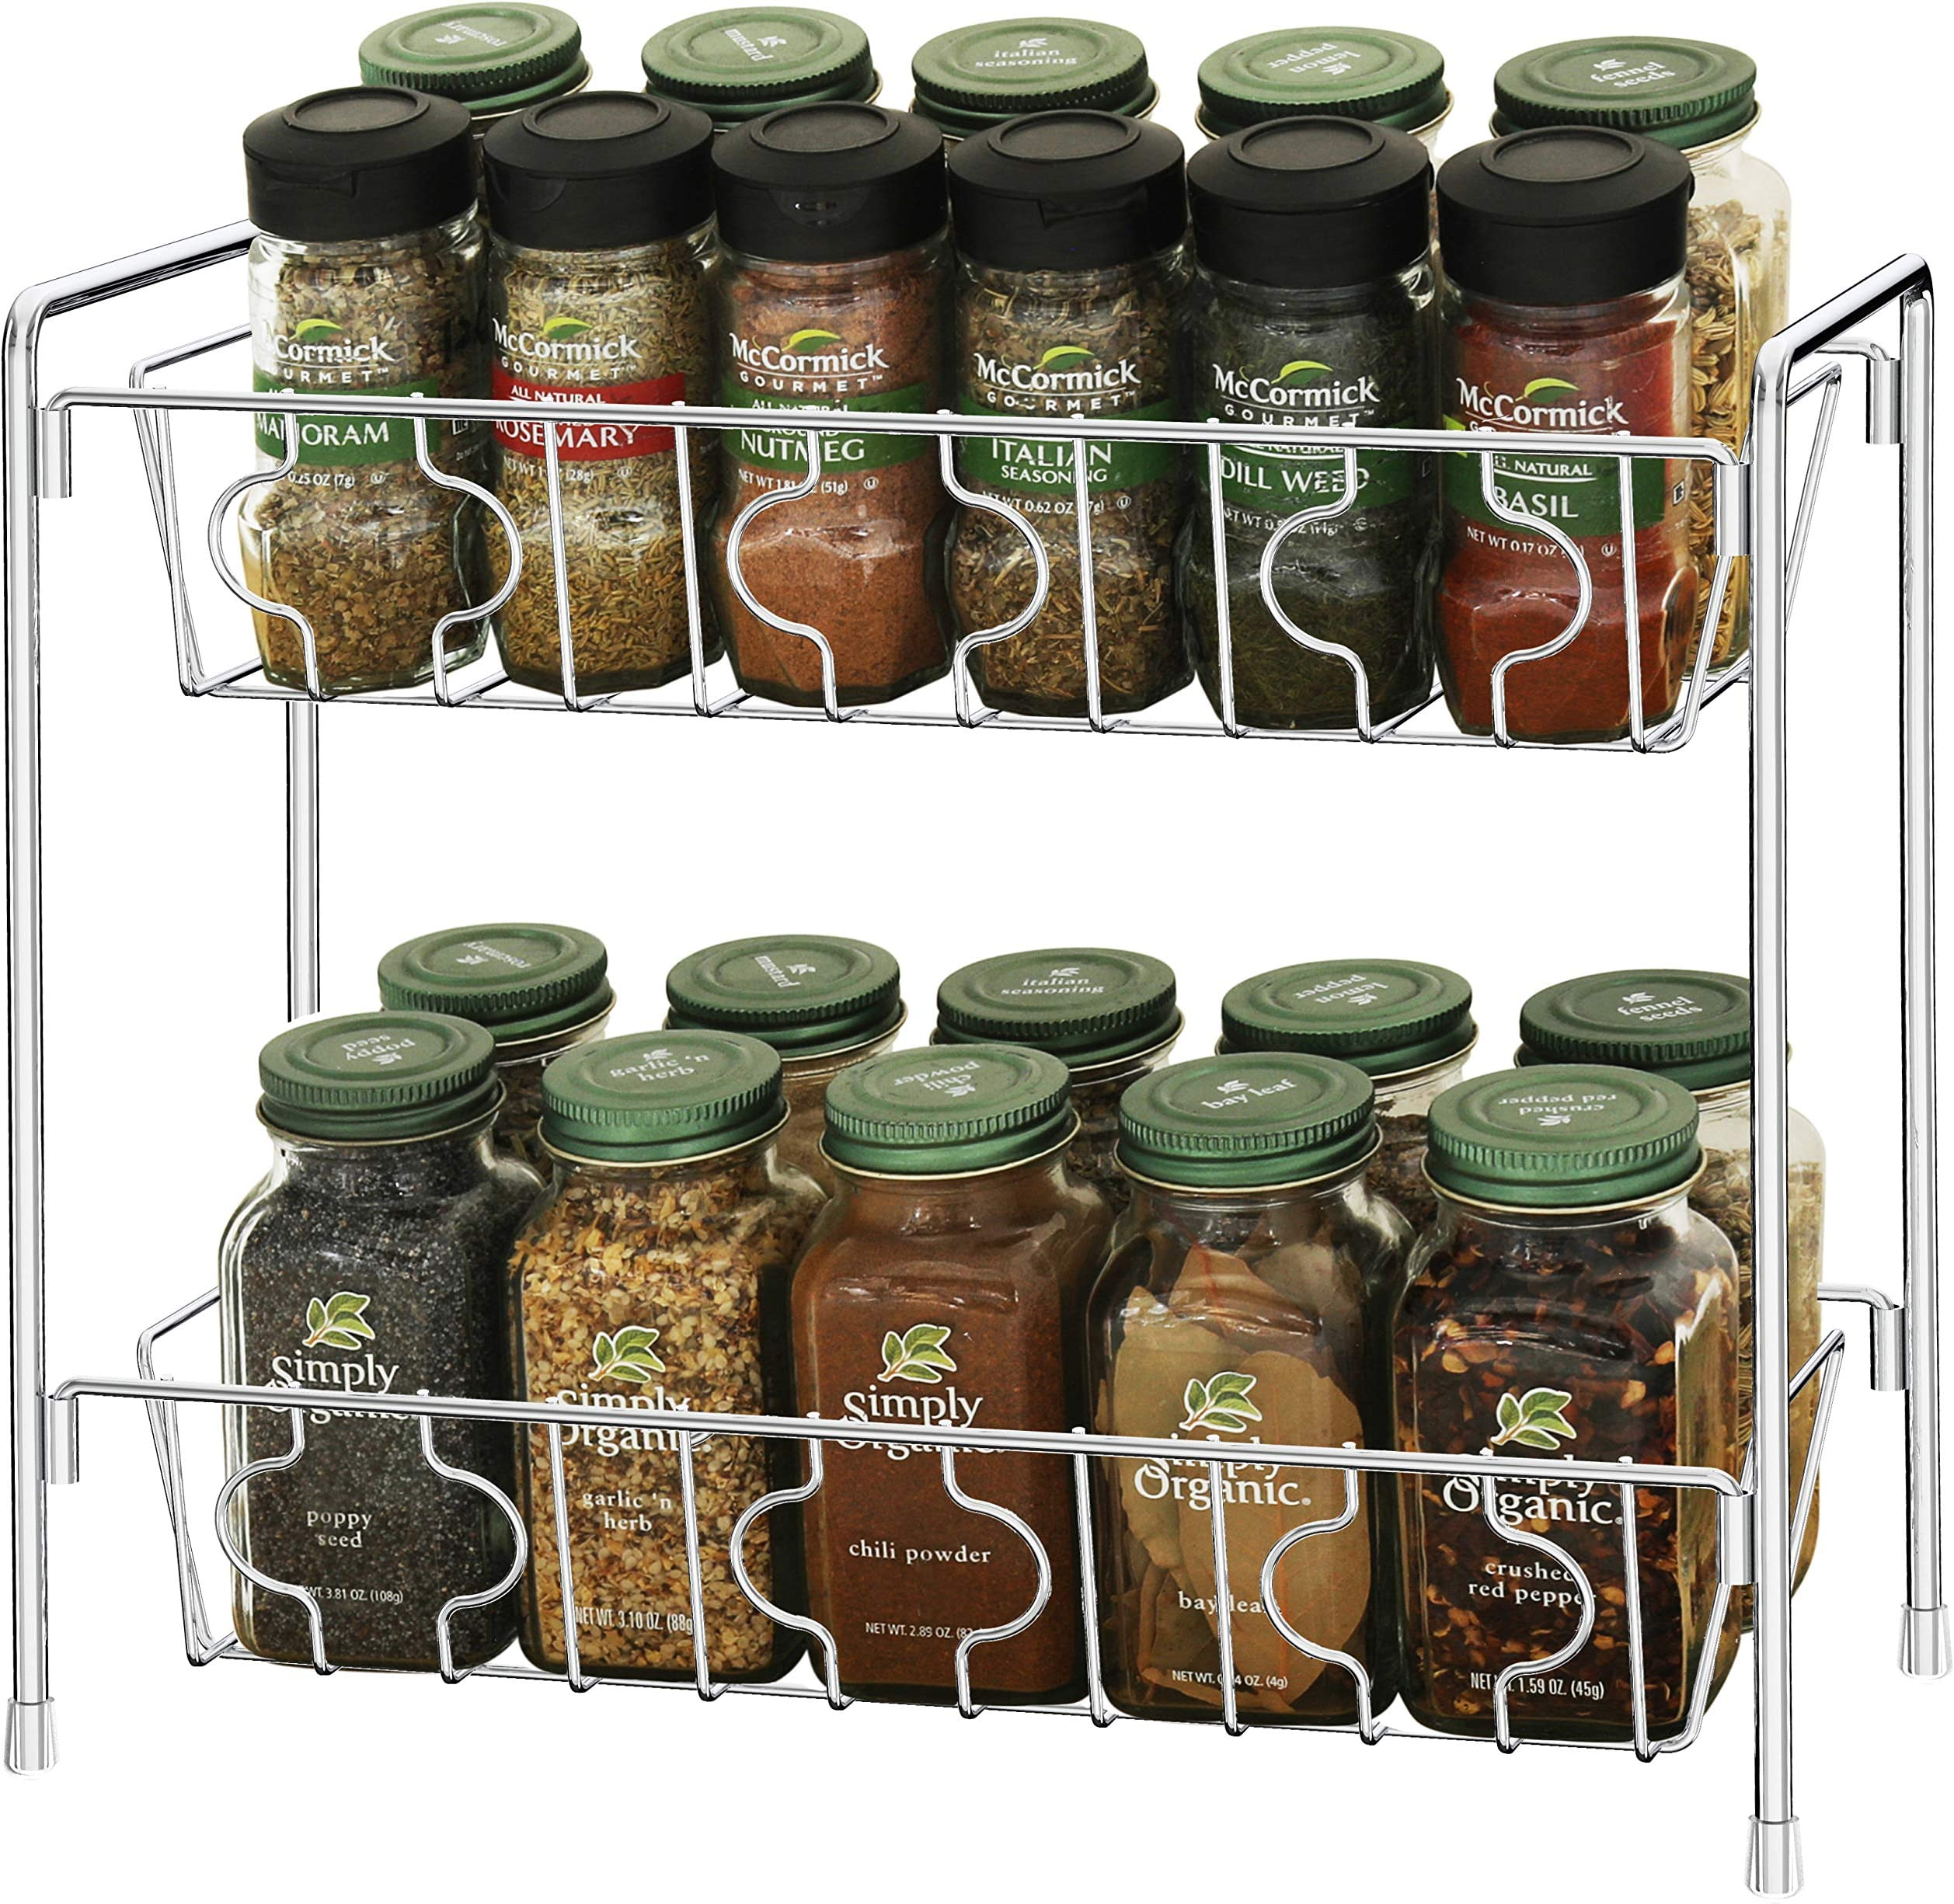 SimpleHouseware 2-Tier Kitchen Counter Organizer Spice Rack, Chrome